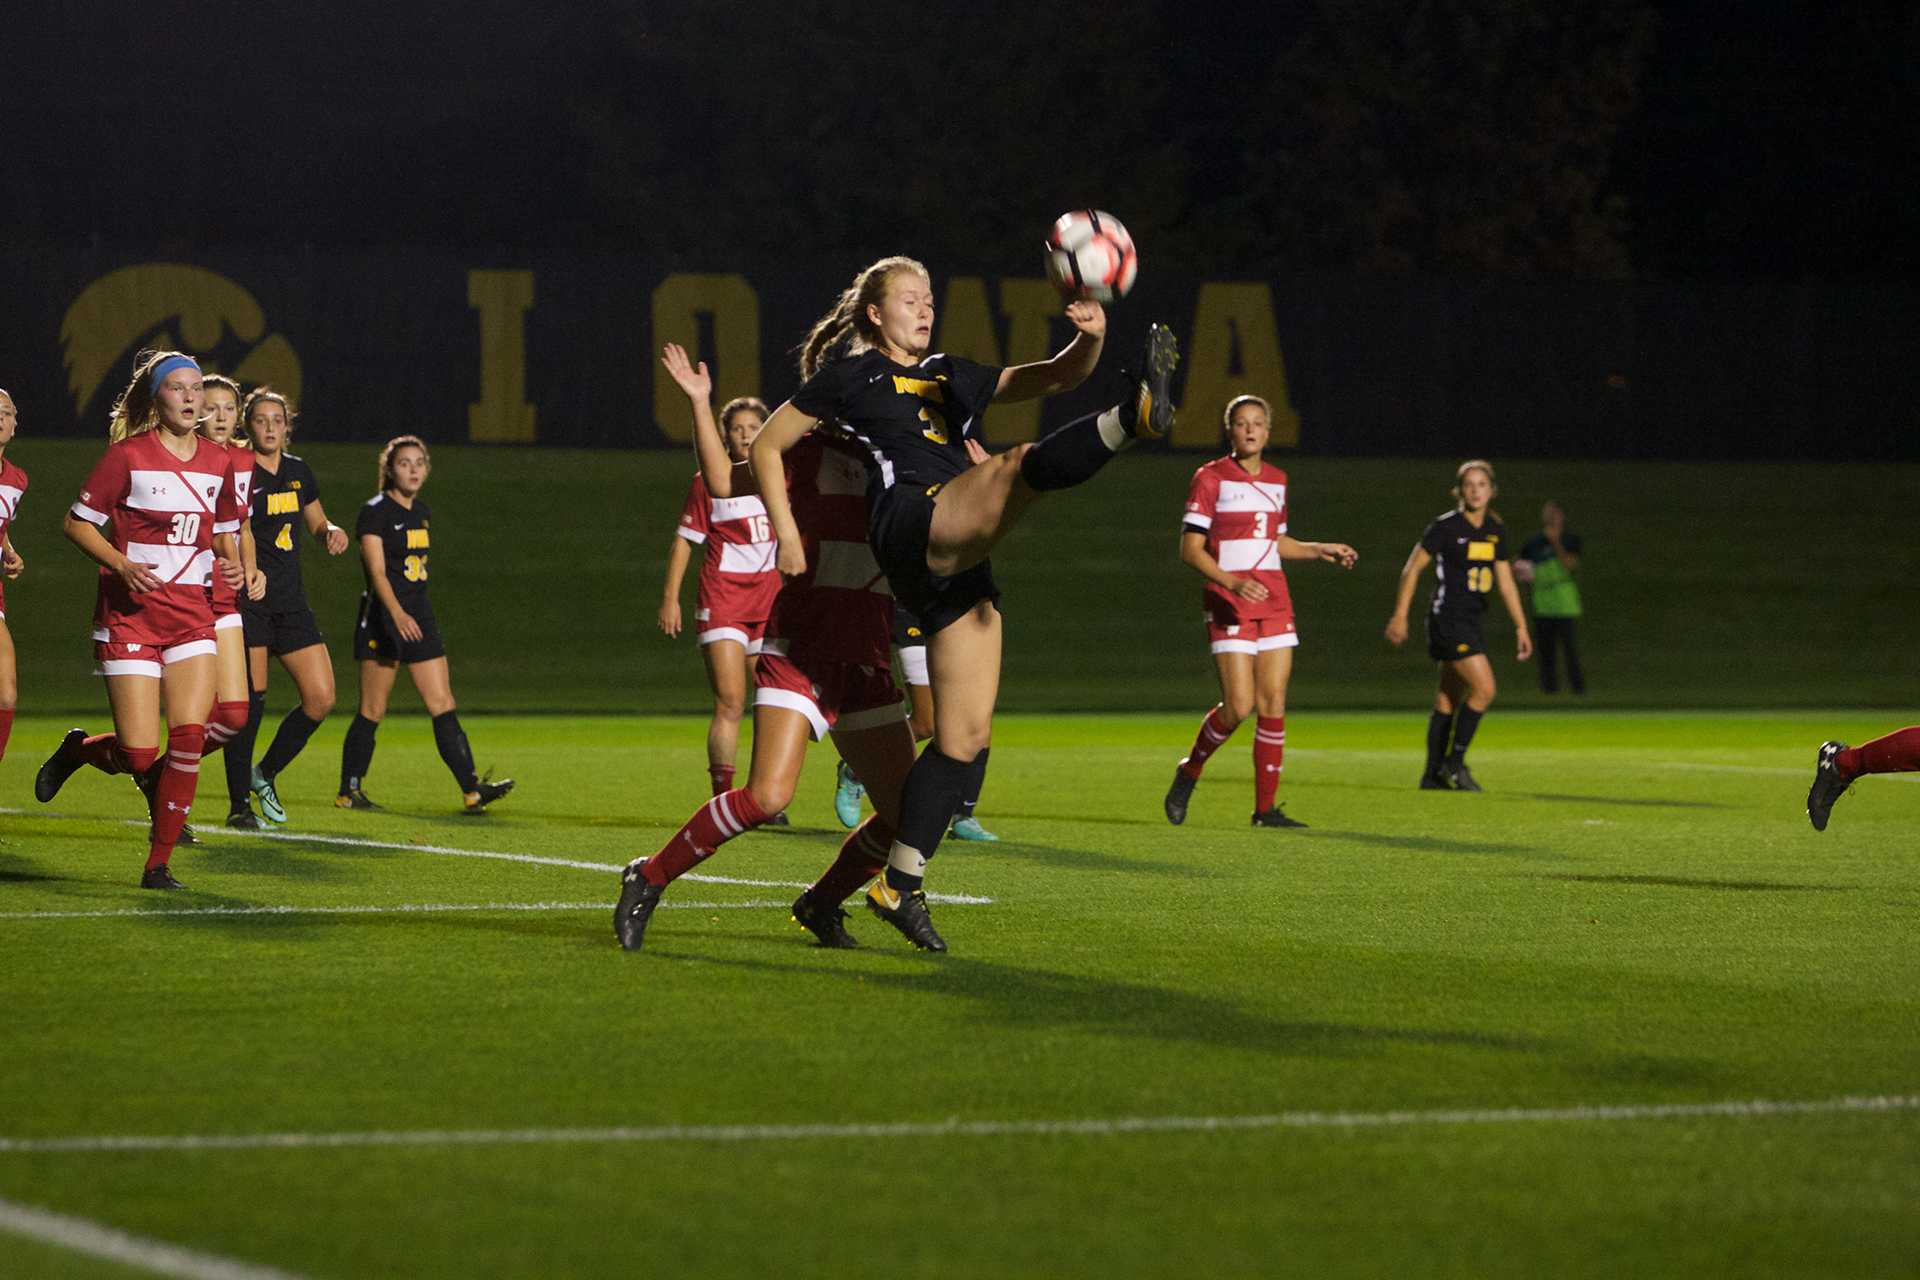 Hawkeye midfielder Morgan Kemerling attempts a half bicycle kick in the box at the Iowa Soccer Complex in Iowa City on Saturday, October 21, 2017. The Hawkeyes fell to the Badgers 3-0 (Paxton Corey/The Daily Iowan)